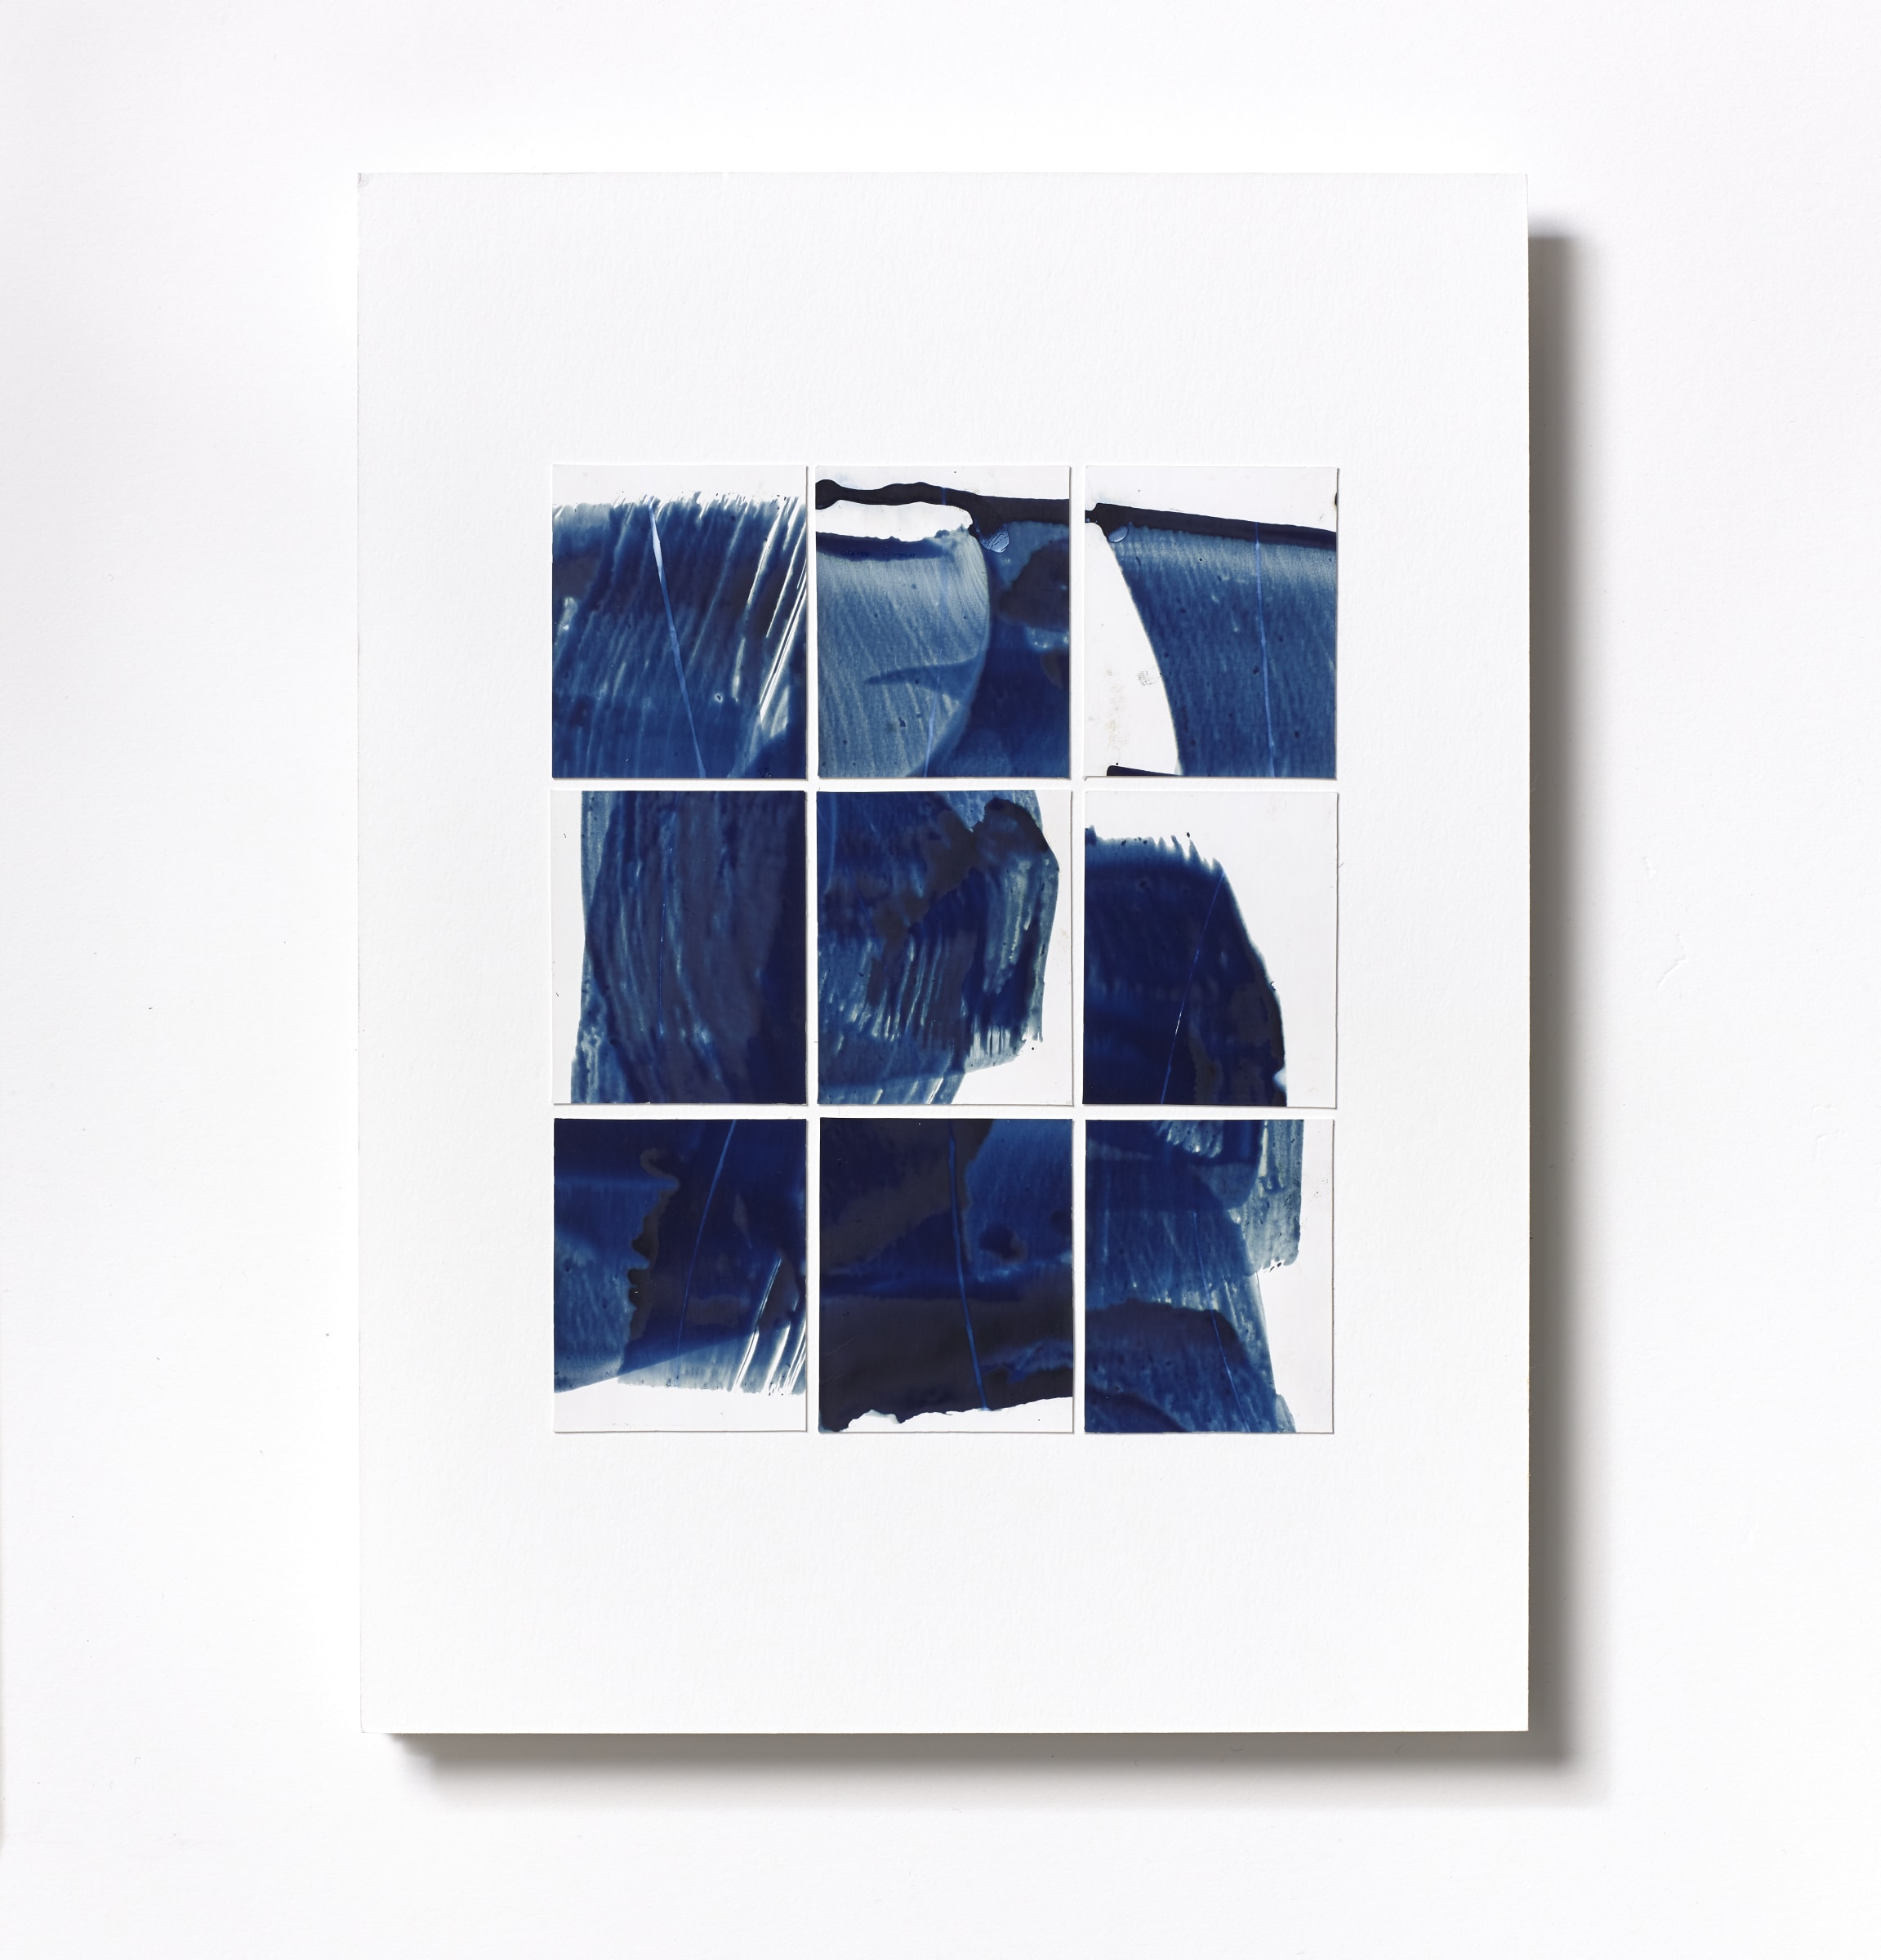 "<span class=""link fancybox-details-link""><a href=""/content/feature/119/artworks575/"">View Detail Page</a></span><div class=""medium"">Cyanotype Collage of nine hand-painted 2 7/8"" x 1 7/8"" cyanotype photograms on a 12 x 9 inch 8-ply museum board<br /> Print only<br /> Unique</div> <div class=""dimensions"">30.5 x 22.9 cm<br /> 12 x 9 in</div>"